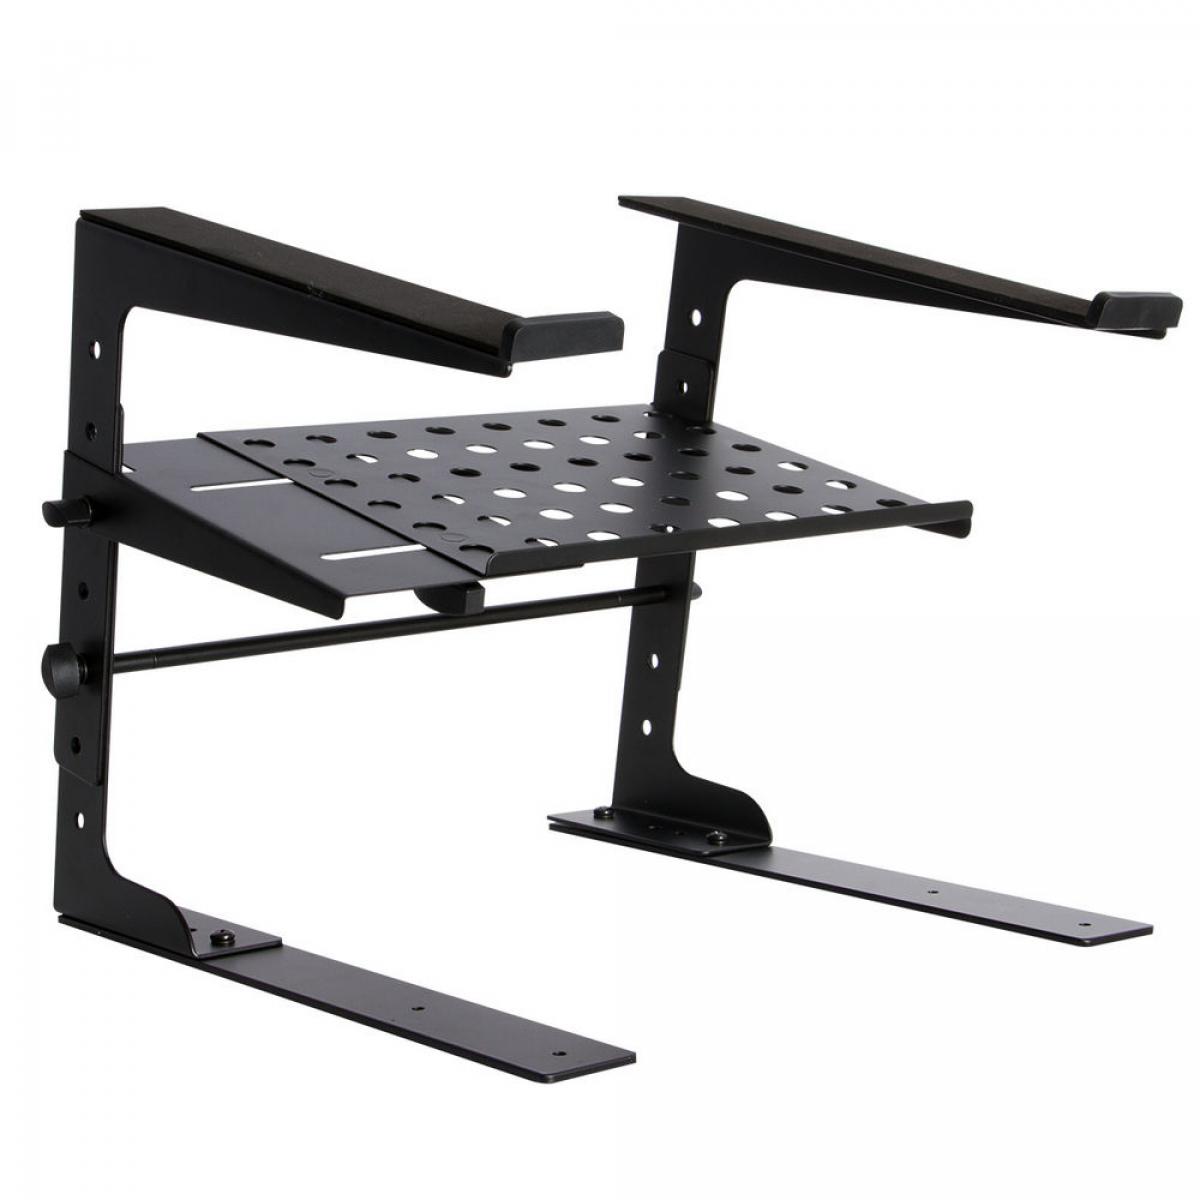 On-Stage Stands LPT6000 Multi-Purpose Laptop Stand w// Shelf